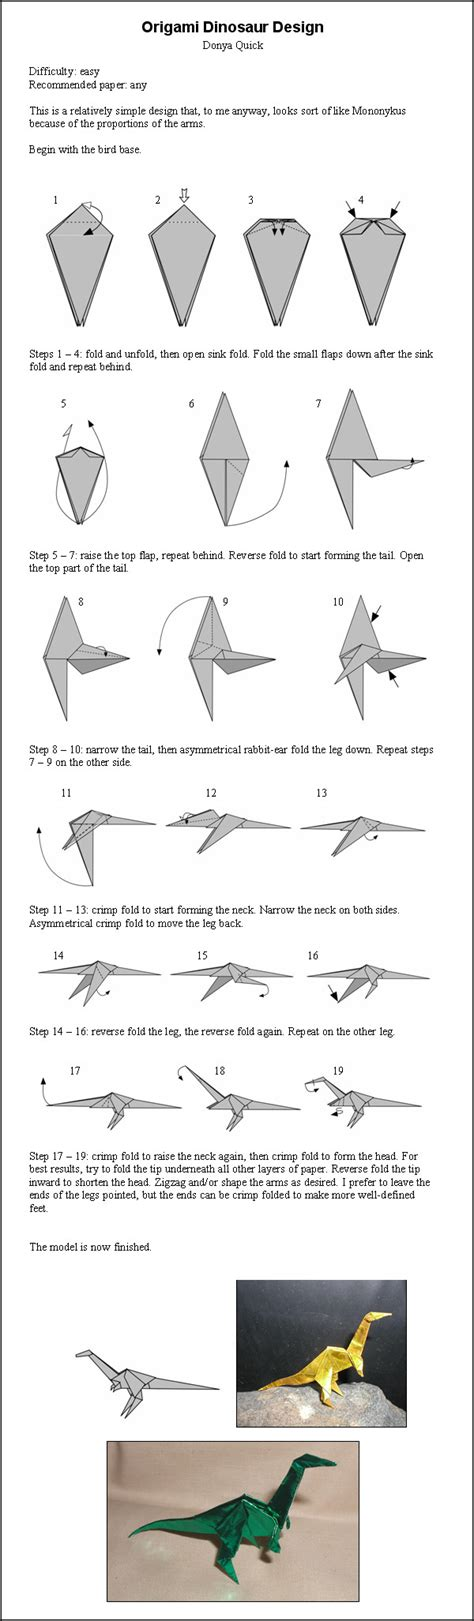 How To Make Origami Dinosaur - origami dinosaur by donyaquick on deviantart